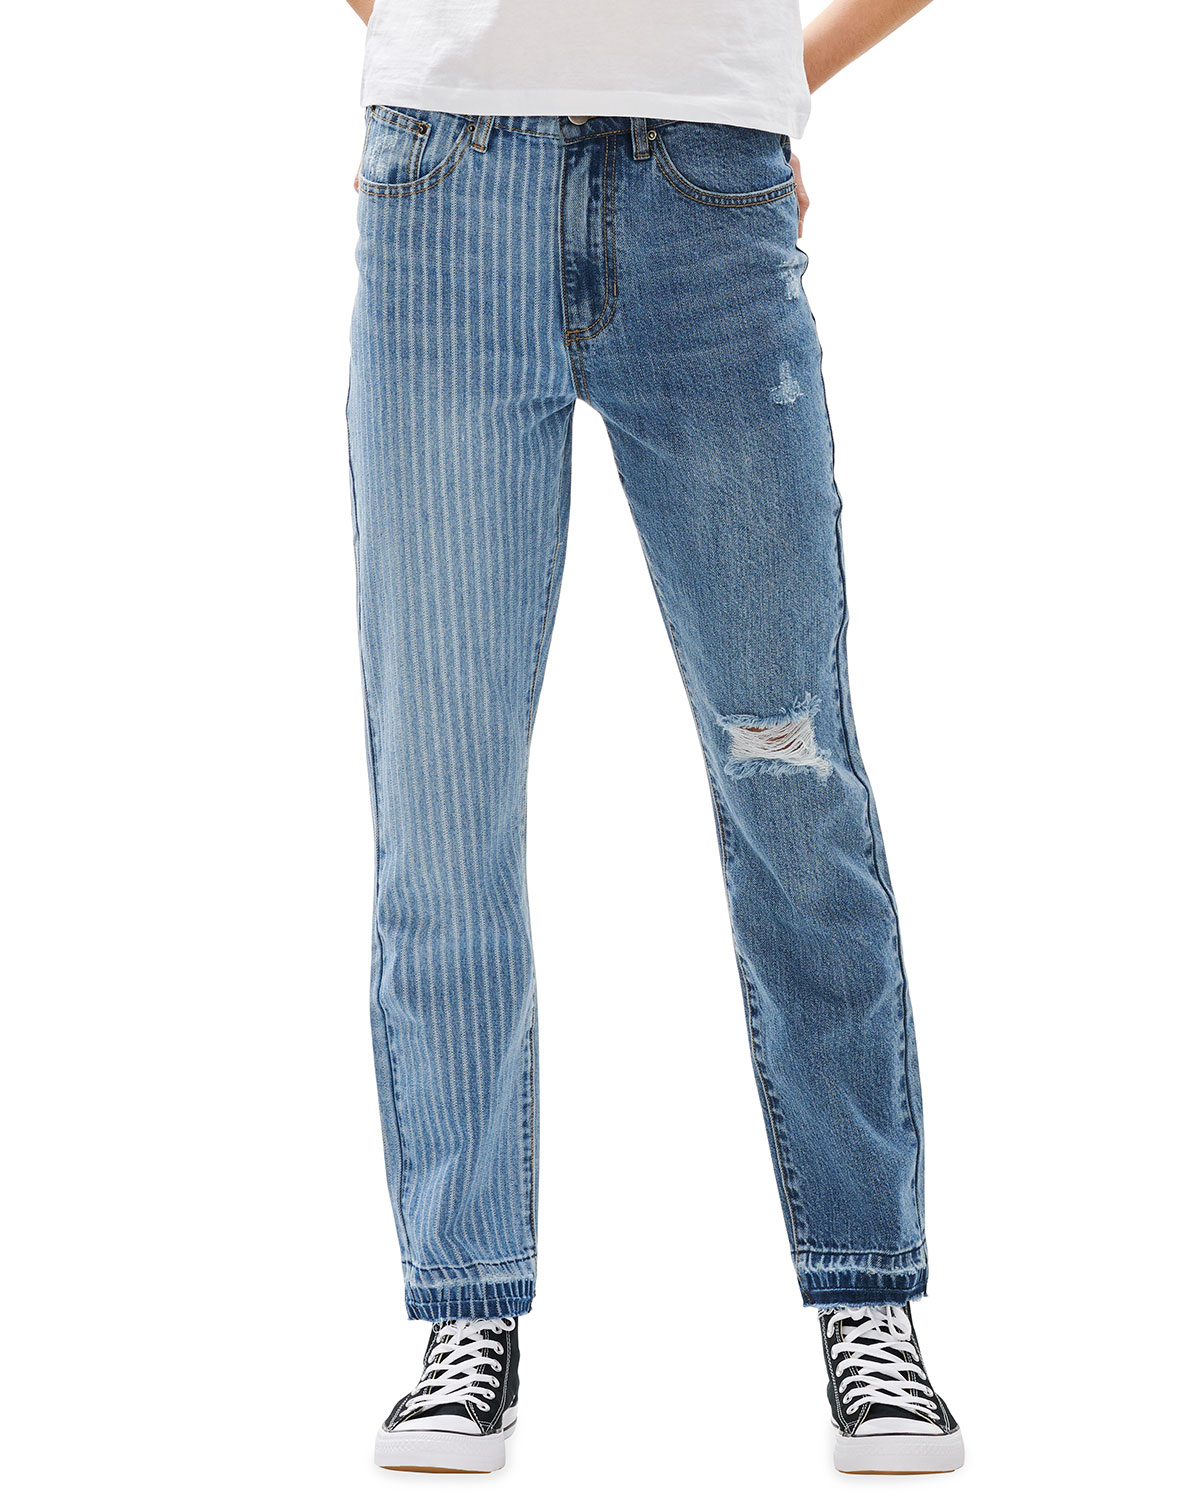 Piper On The Railroad Straight Jeans